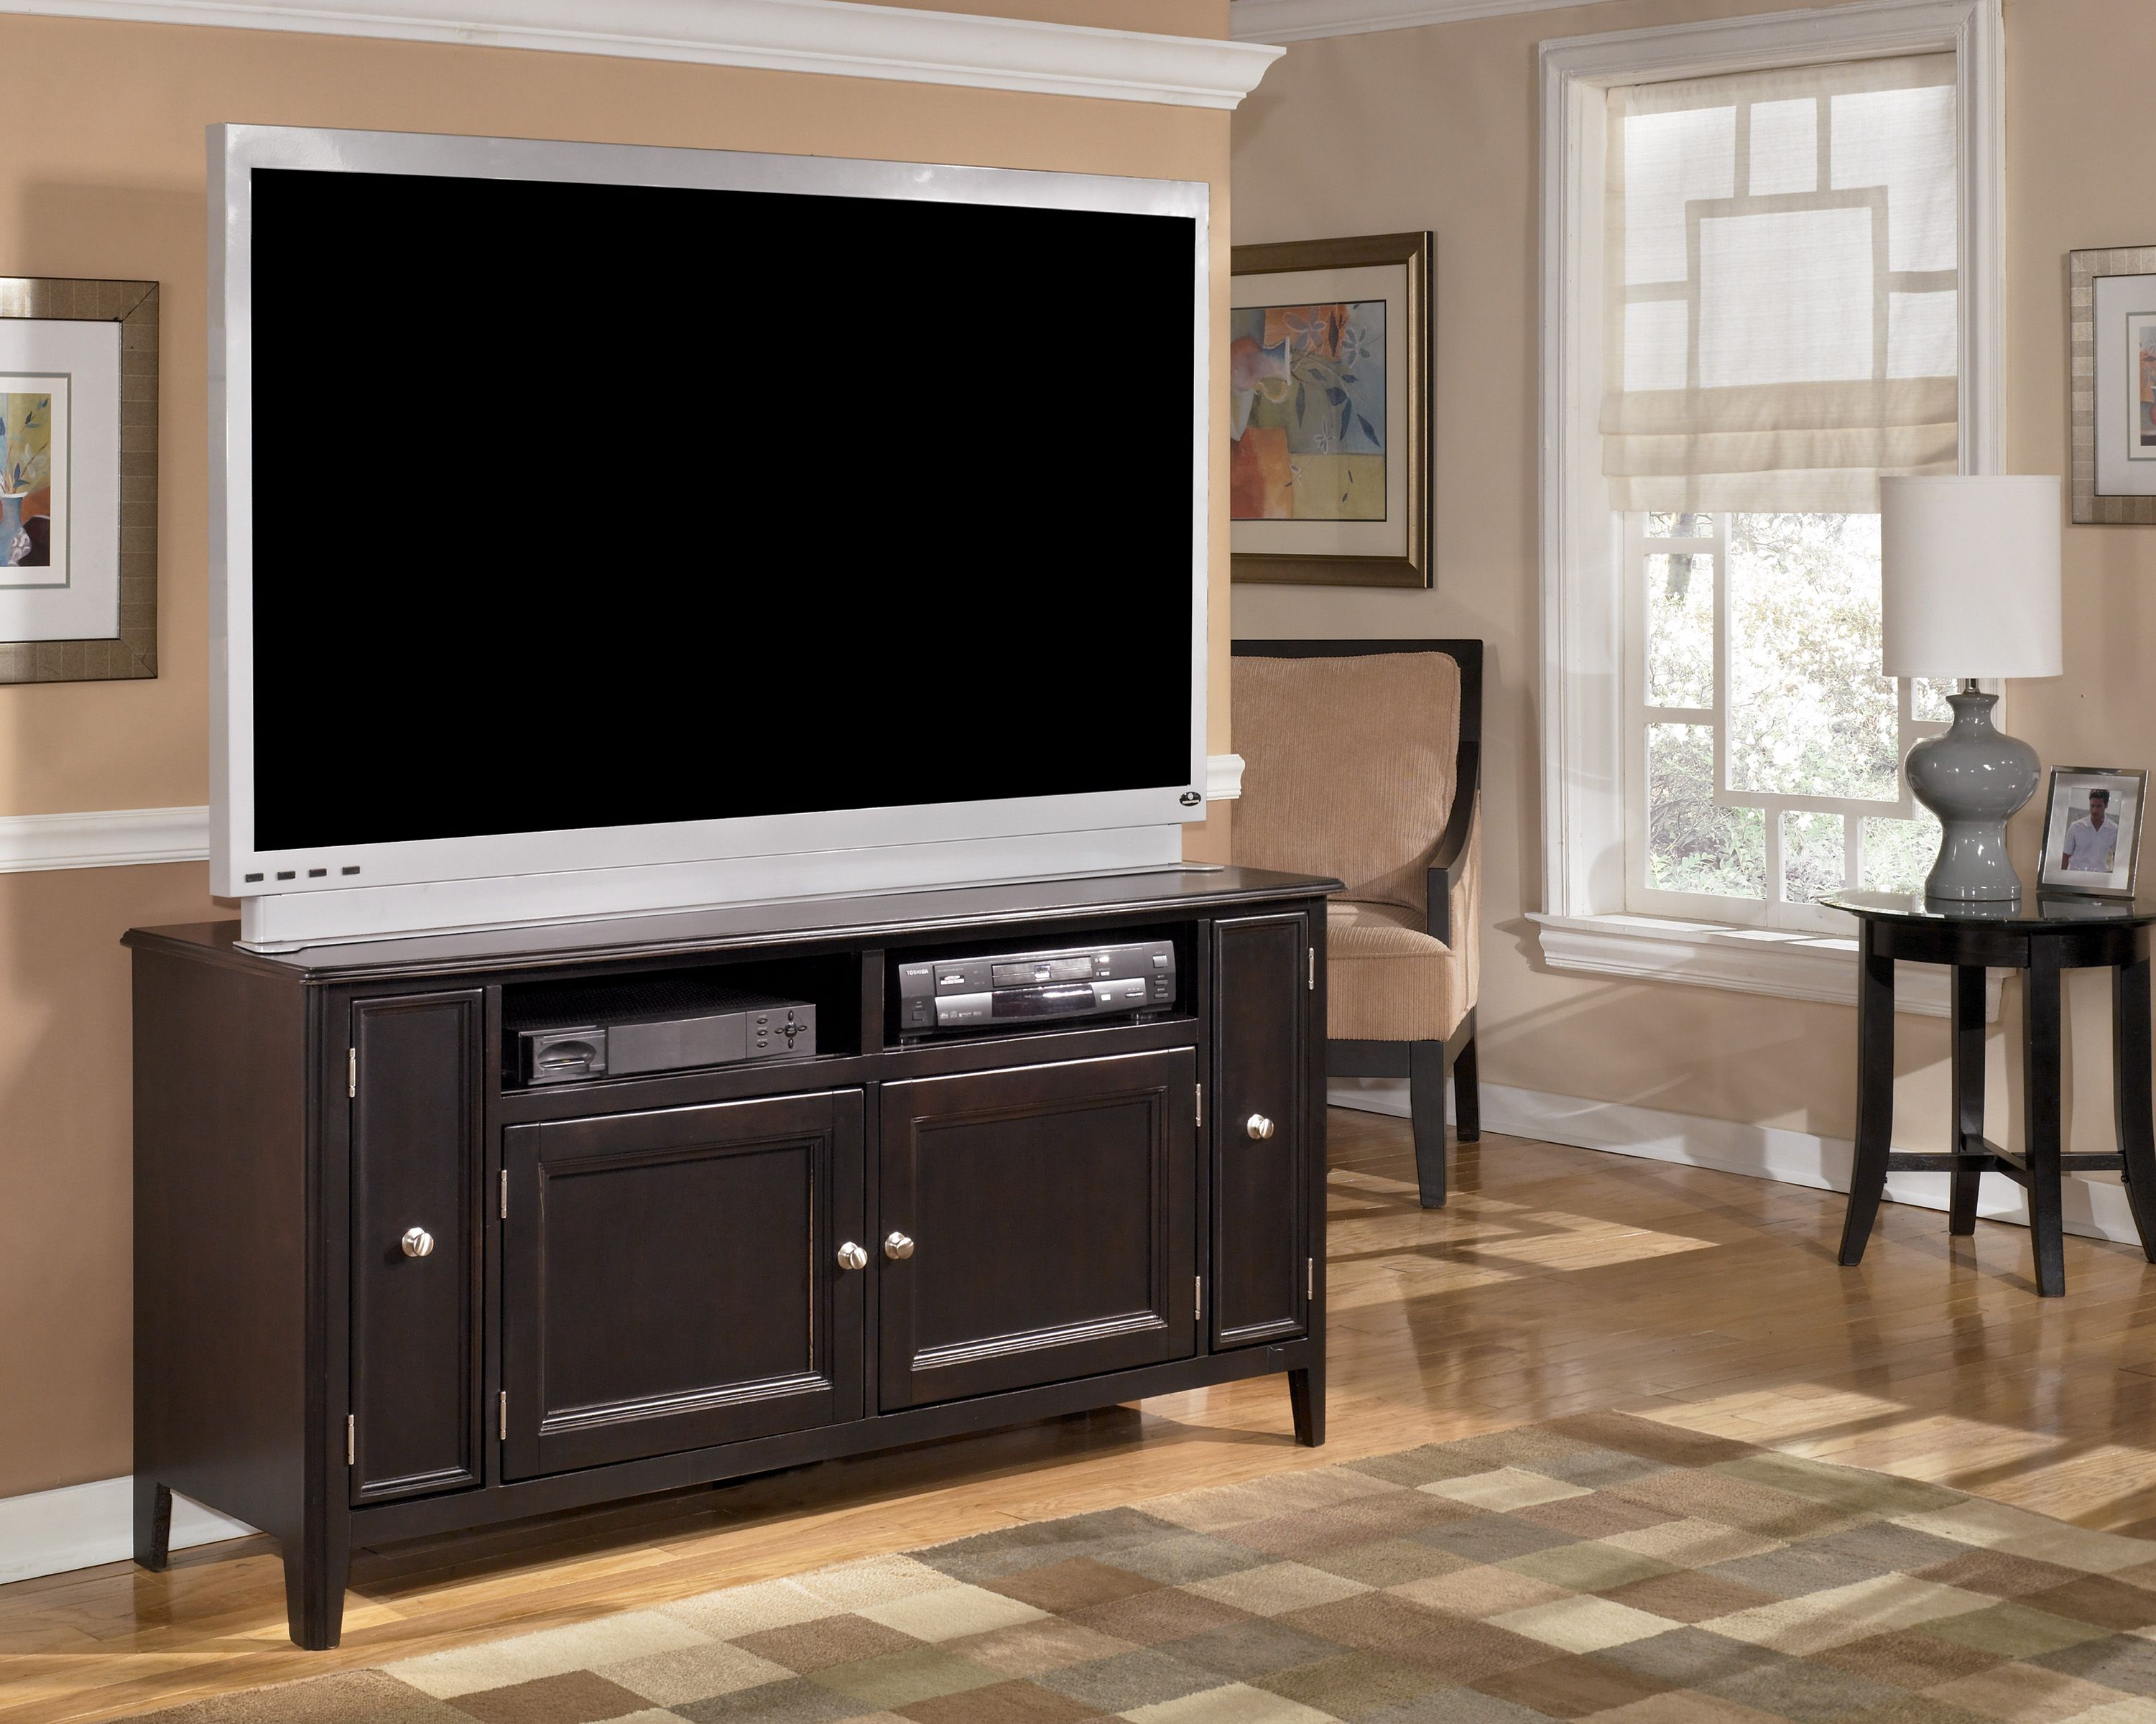 Ashley Furniture W371 38 60 Carlyle Tv Stand Tv Stands